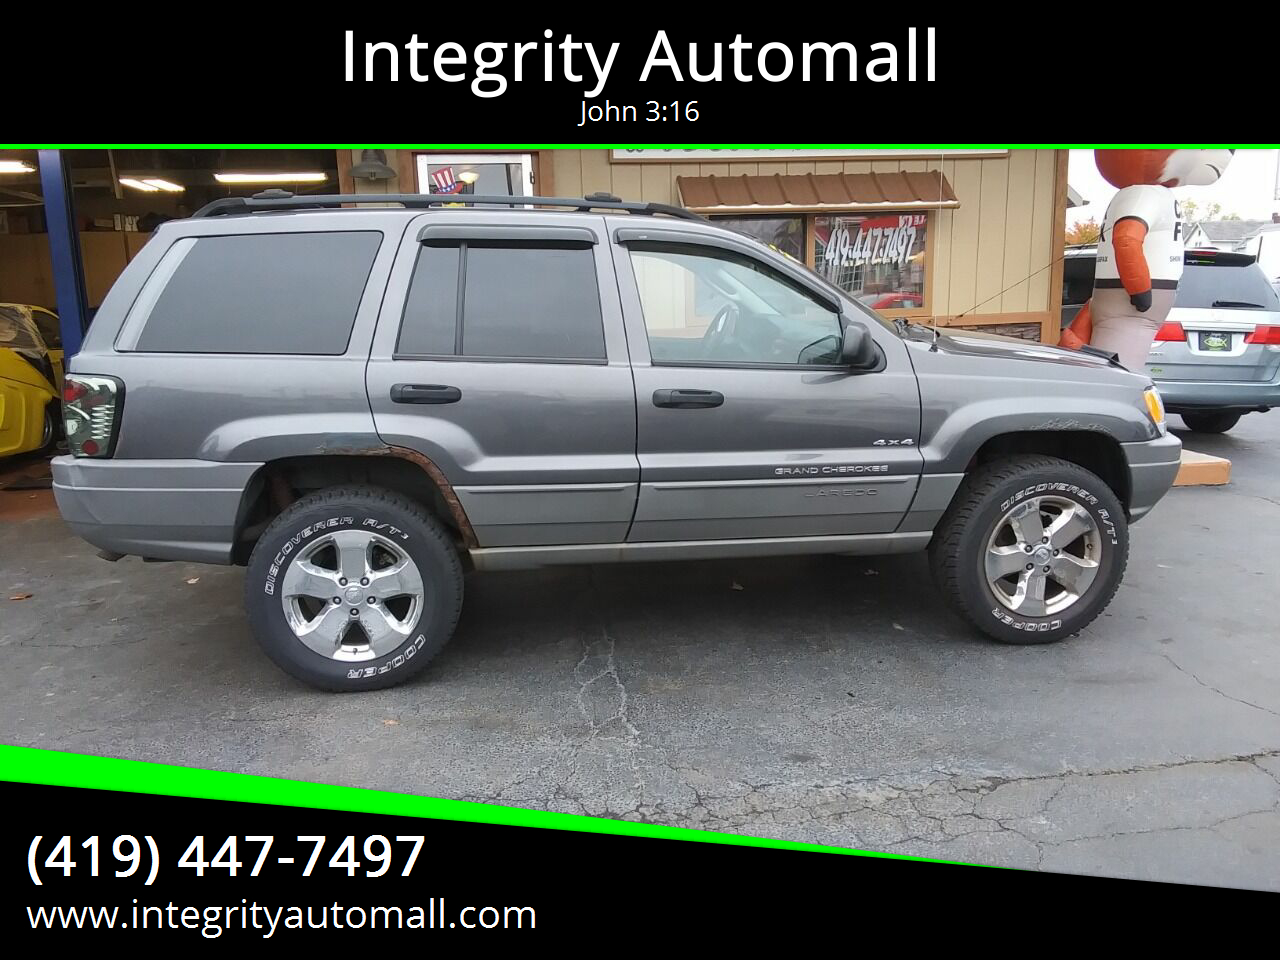 Used 2002 Jeep Grand Cherokee For Sale Carsforsale Com